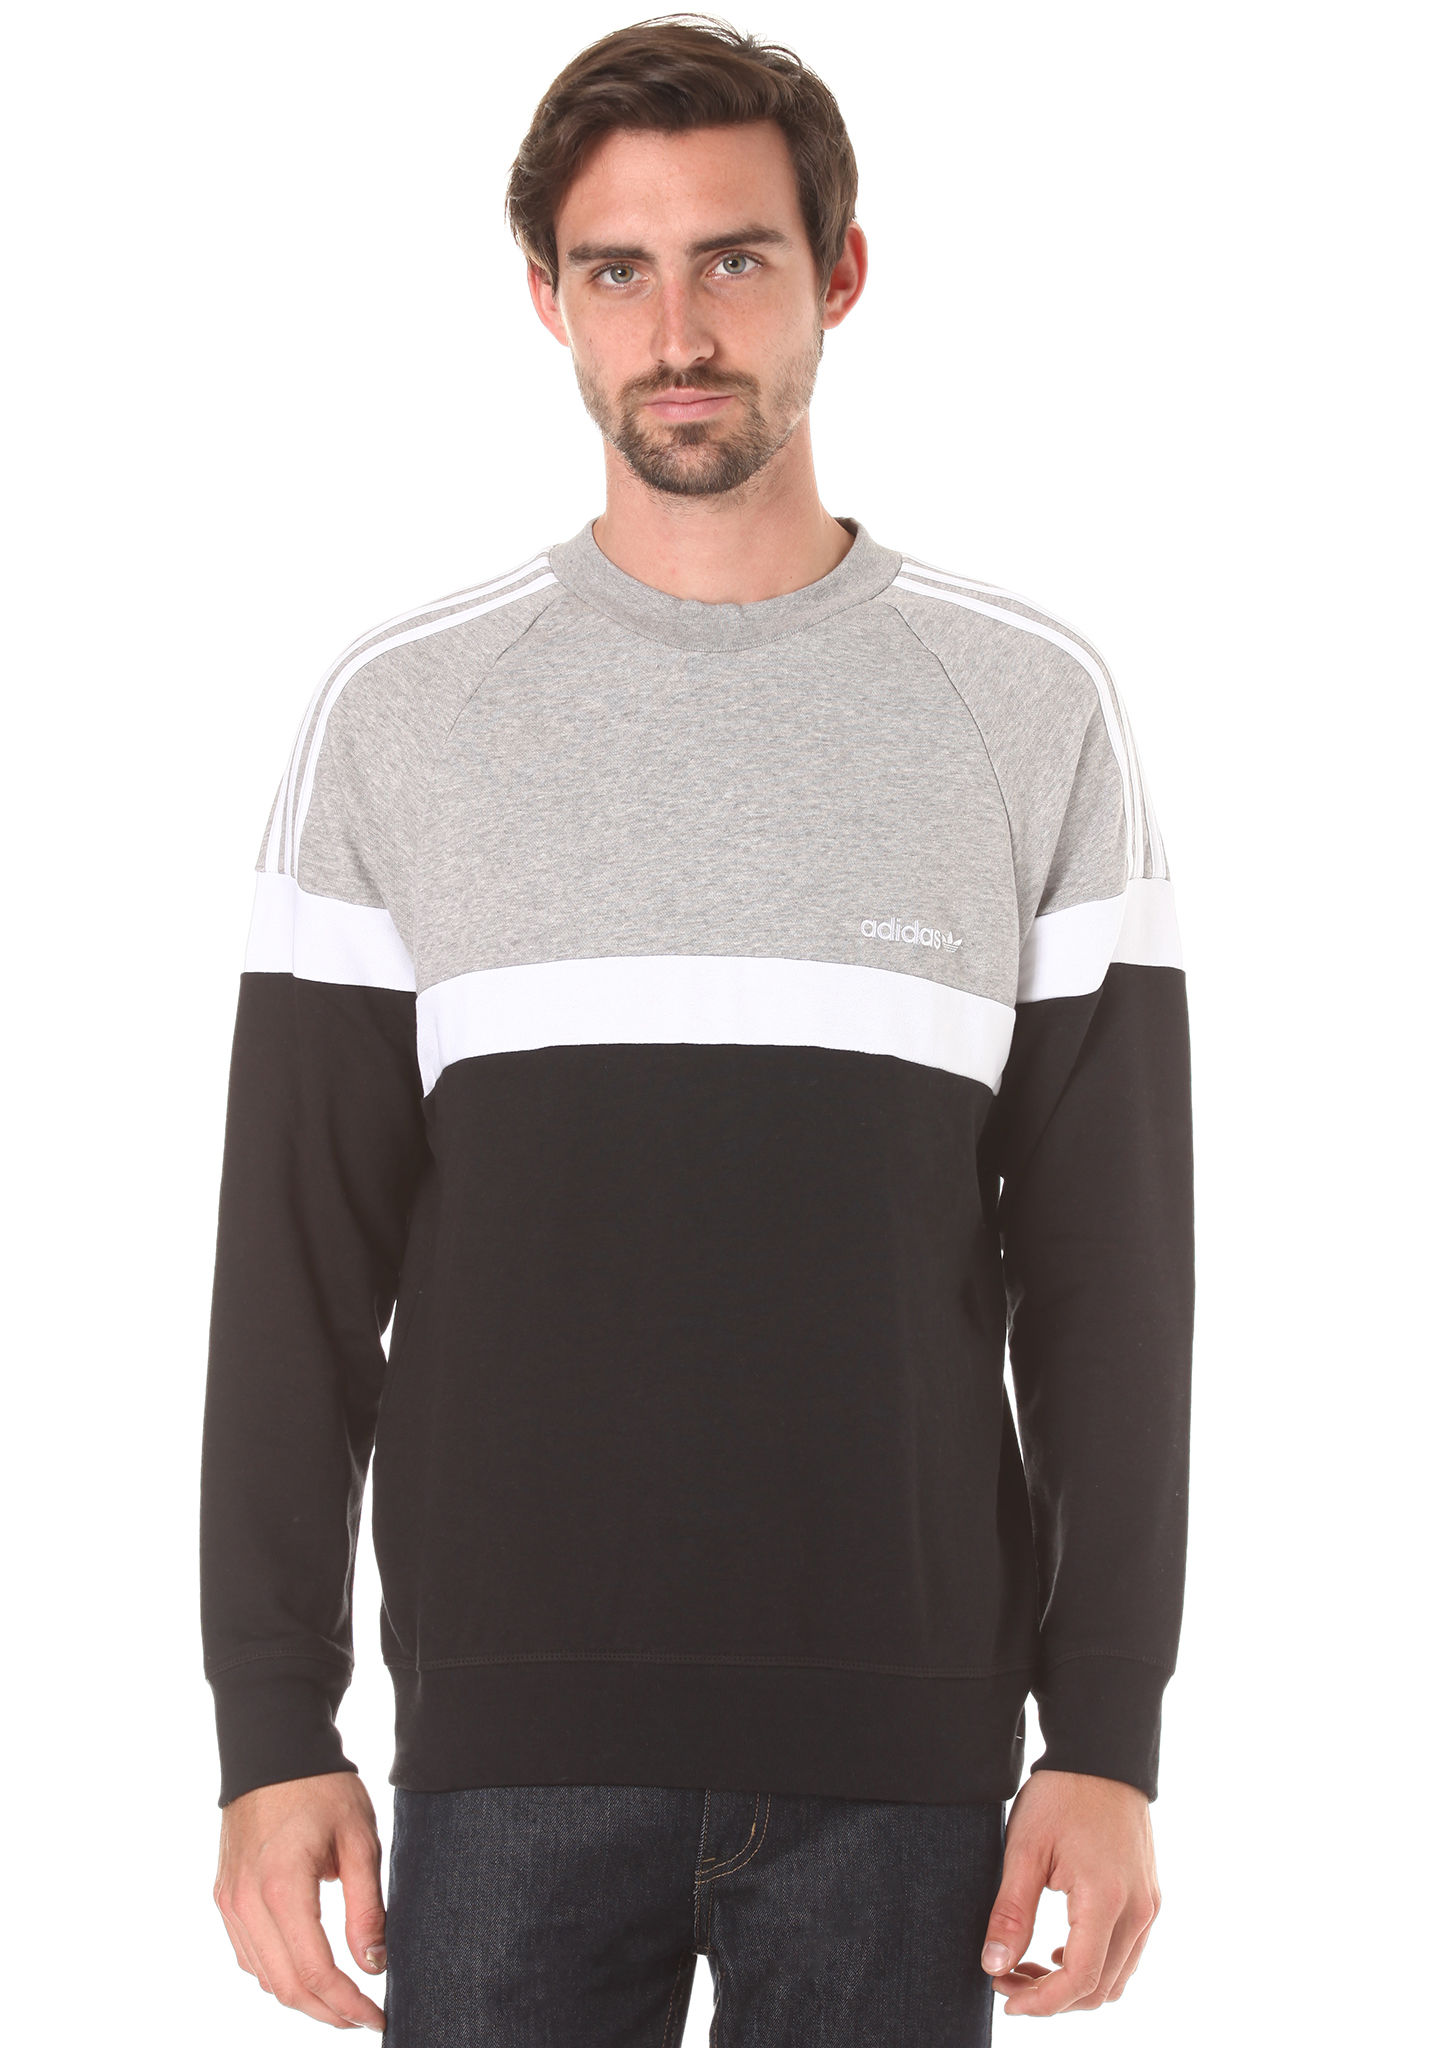 Adidas Originals Itasca Voor Sweatshirt Black Crew Heren Planet 7gfb6y